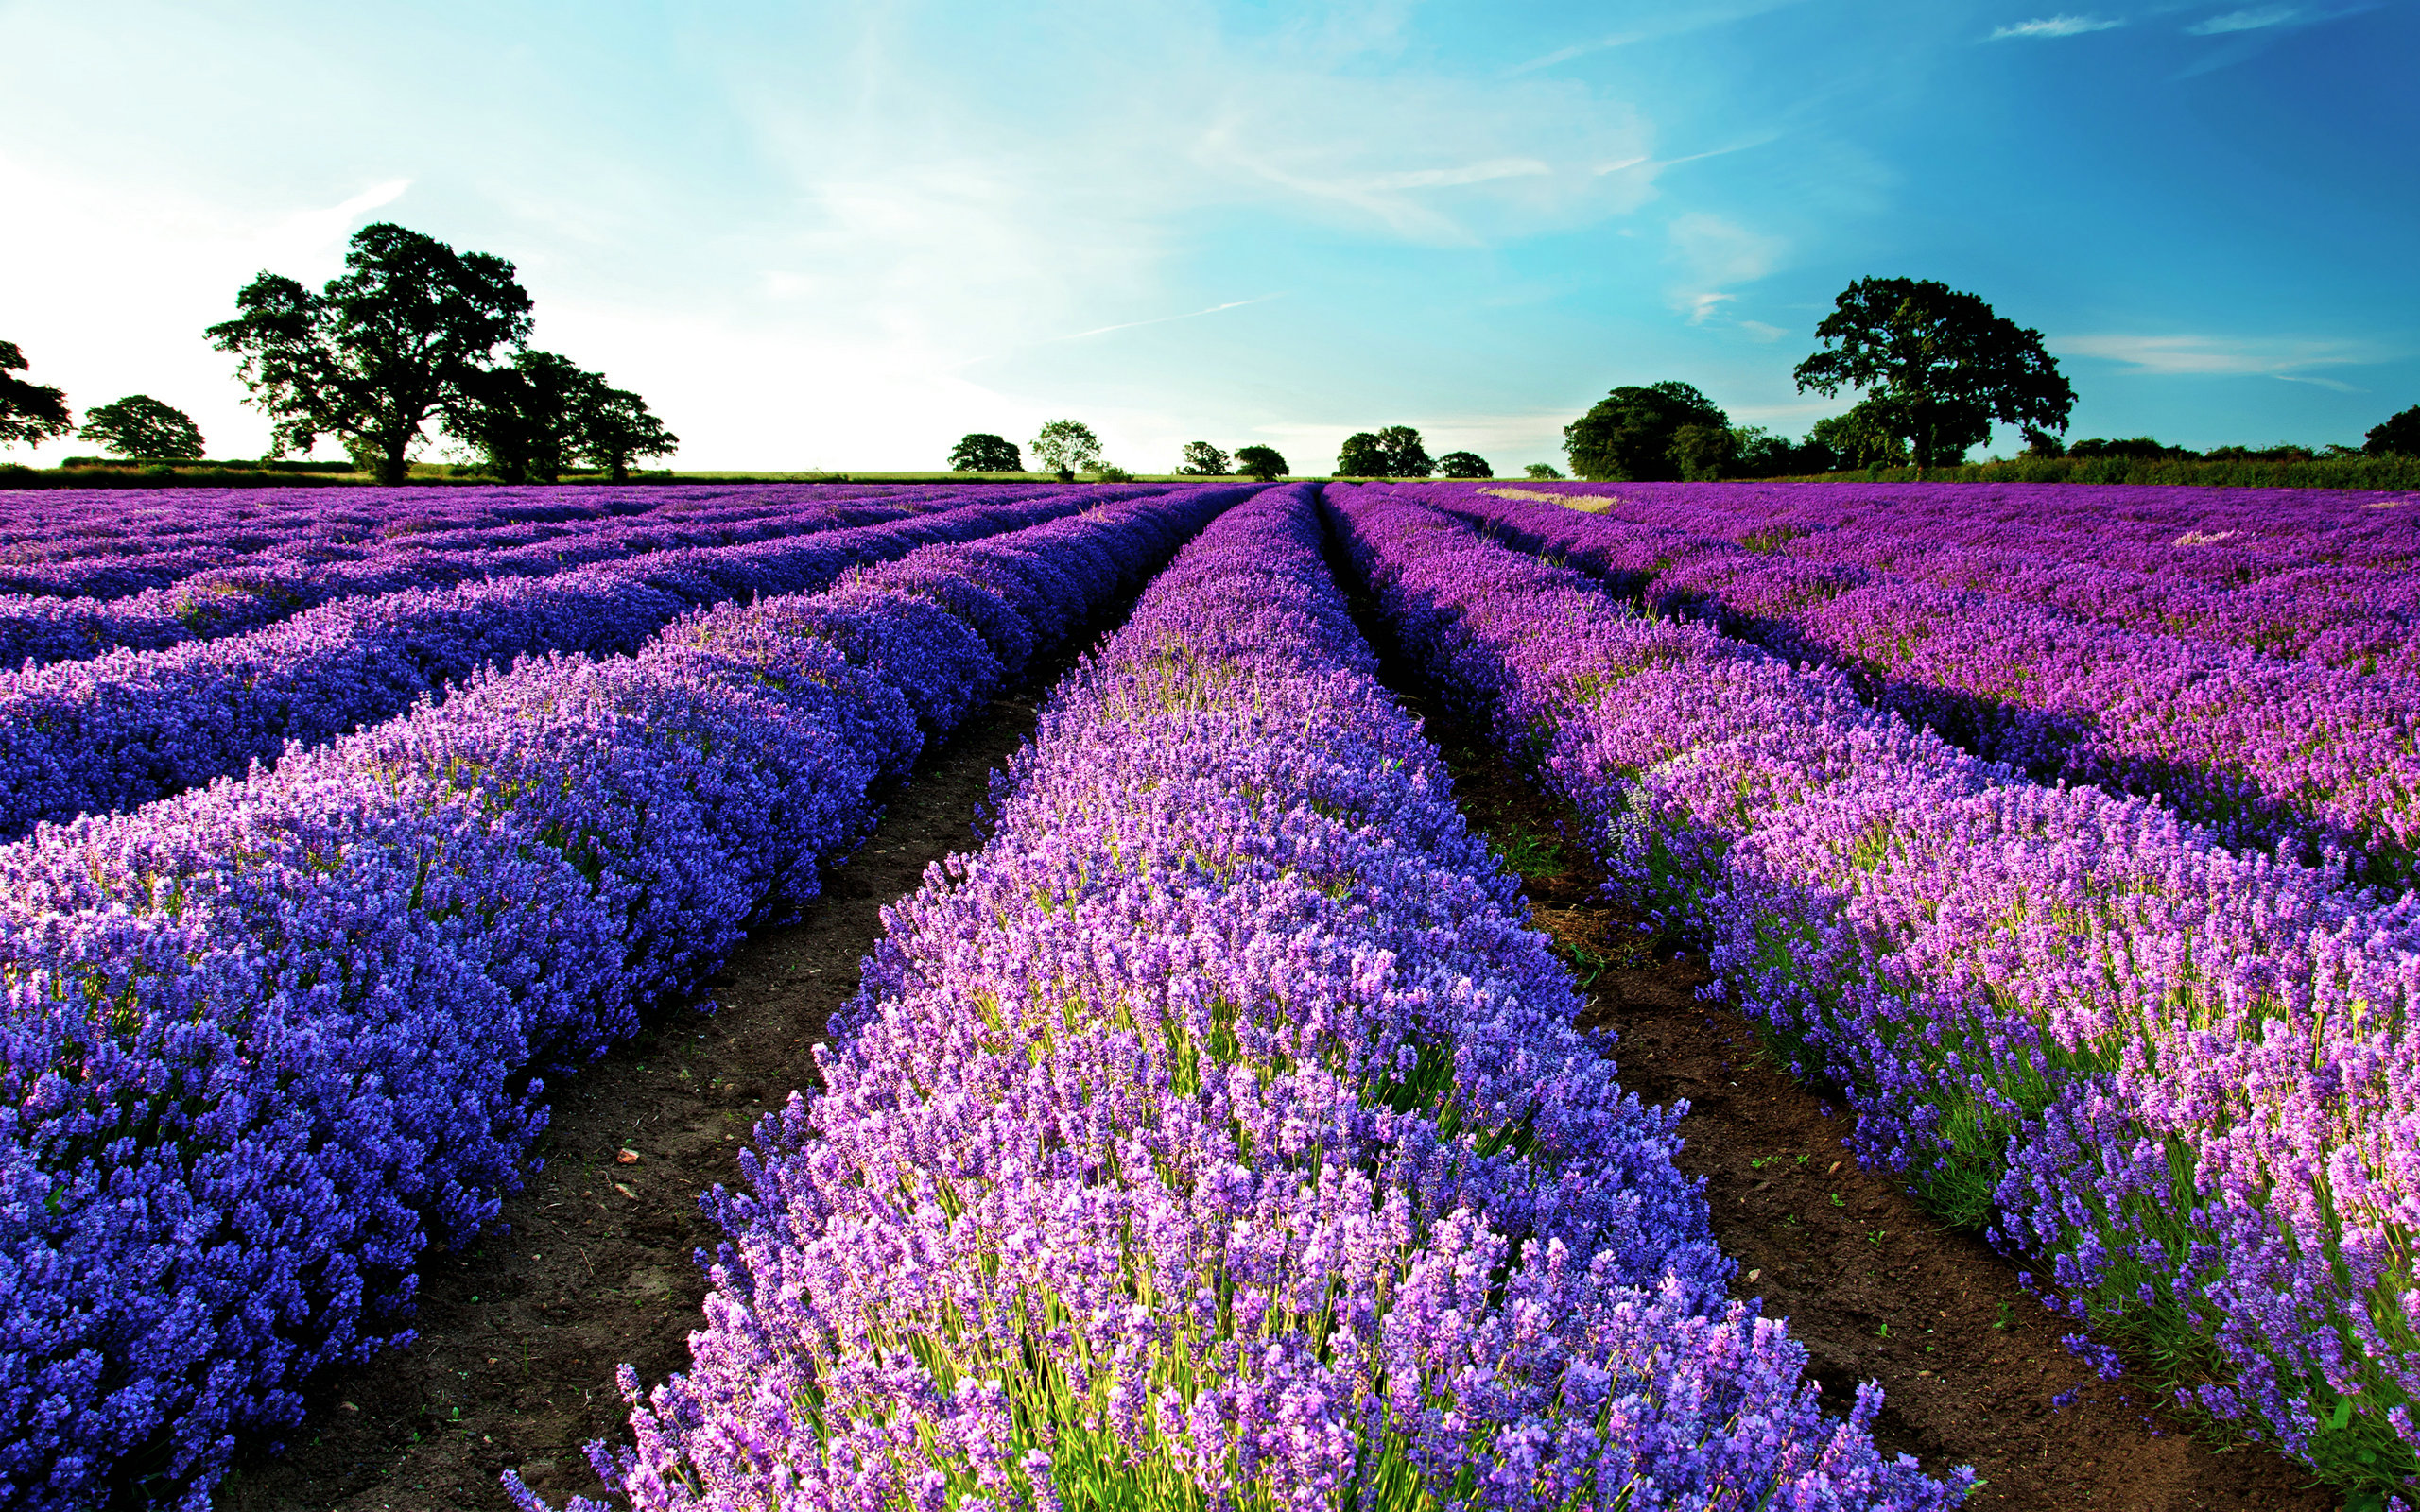 Lavender Field - Wallpaper, High Definition, High Quality ...